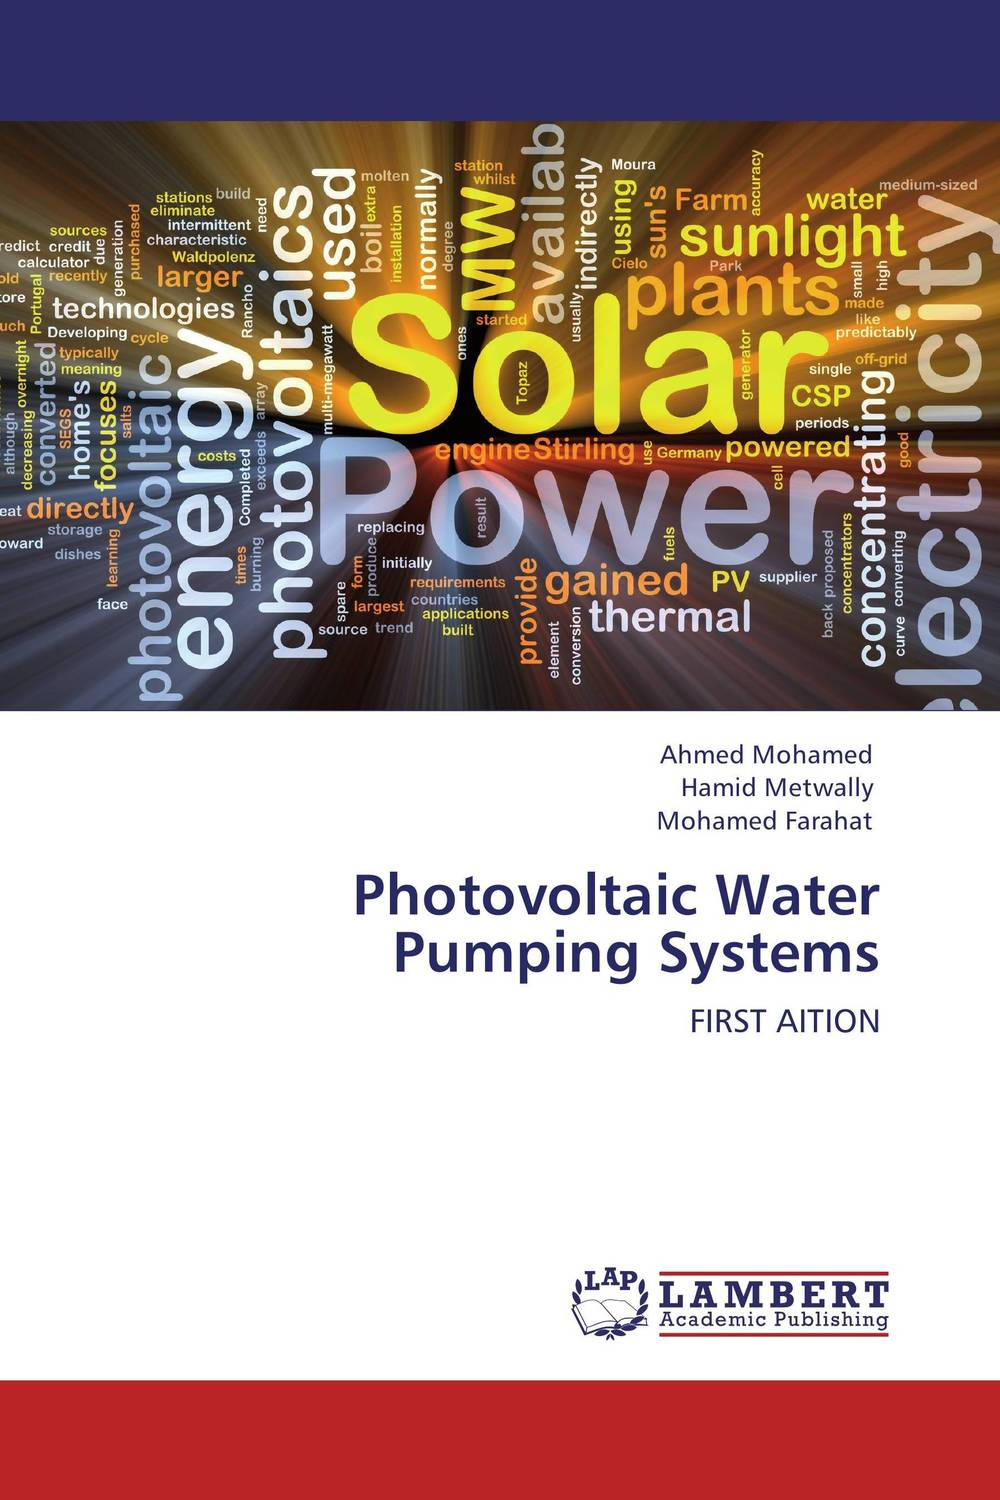 Photovoltaic Water Pumping Systems driven to distraction